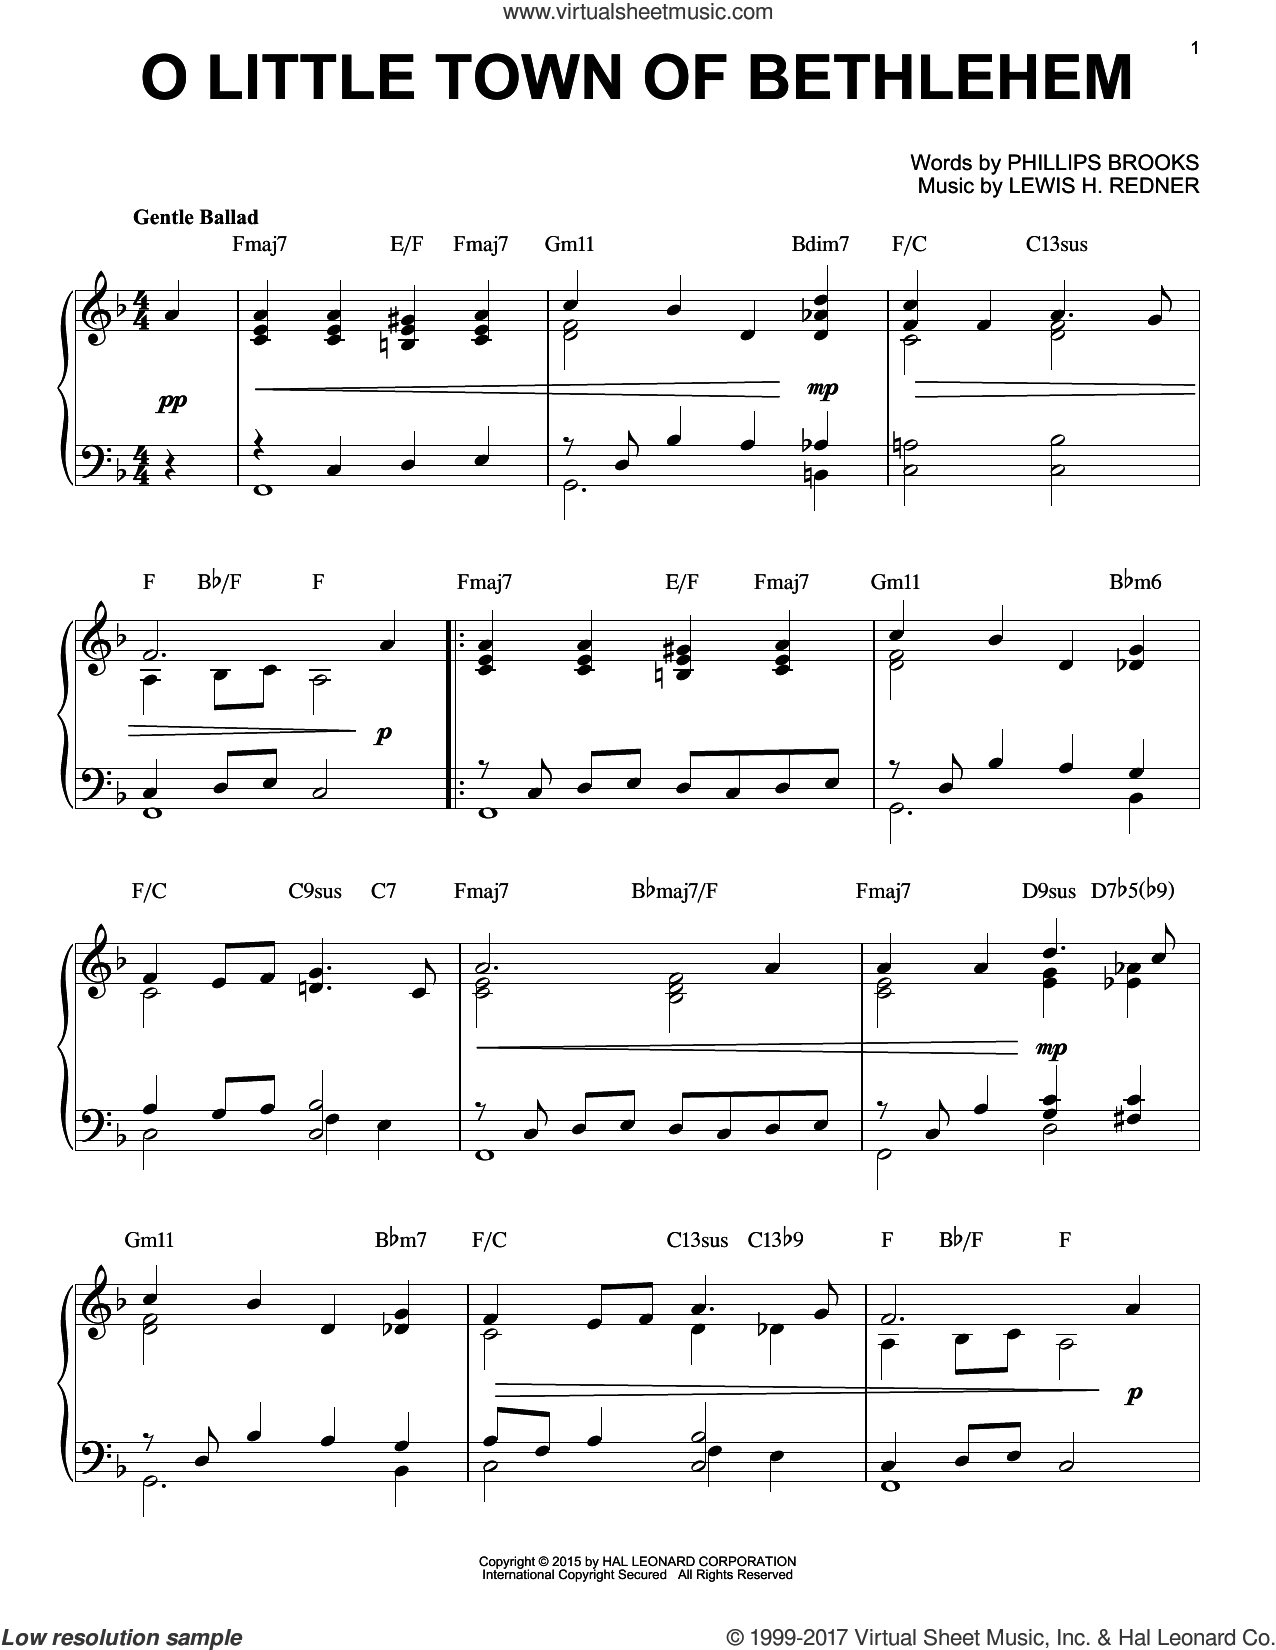 O Little Town Of Bethlehem [Jazz version] (arr. Brent Edstrom) sheet music for piano solo by Phillips Brooks and Lewis Redner, intermediate skill level